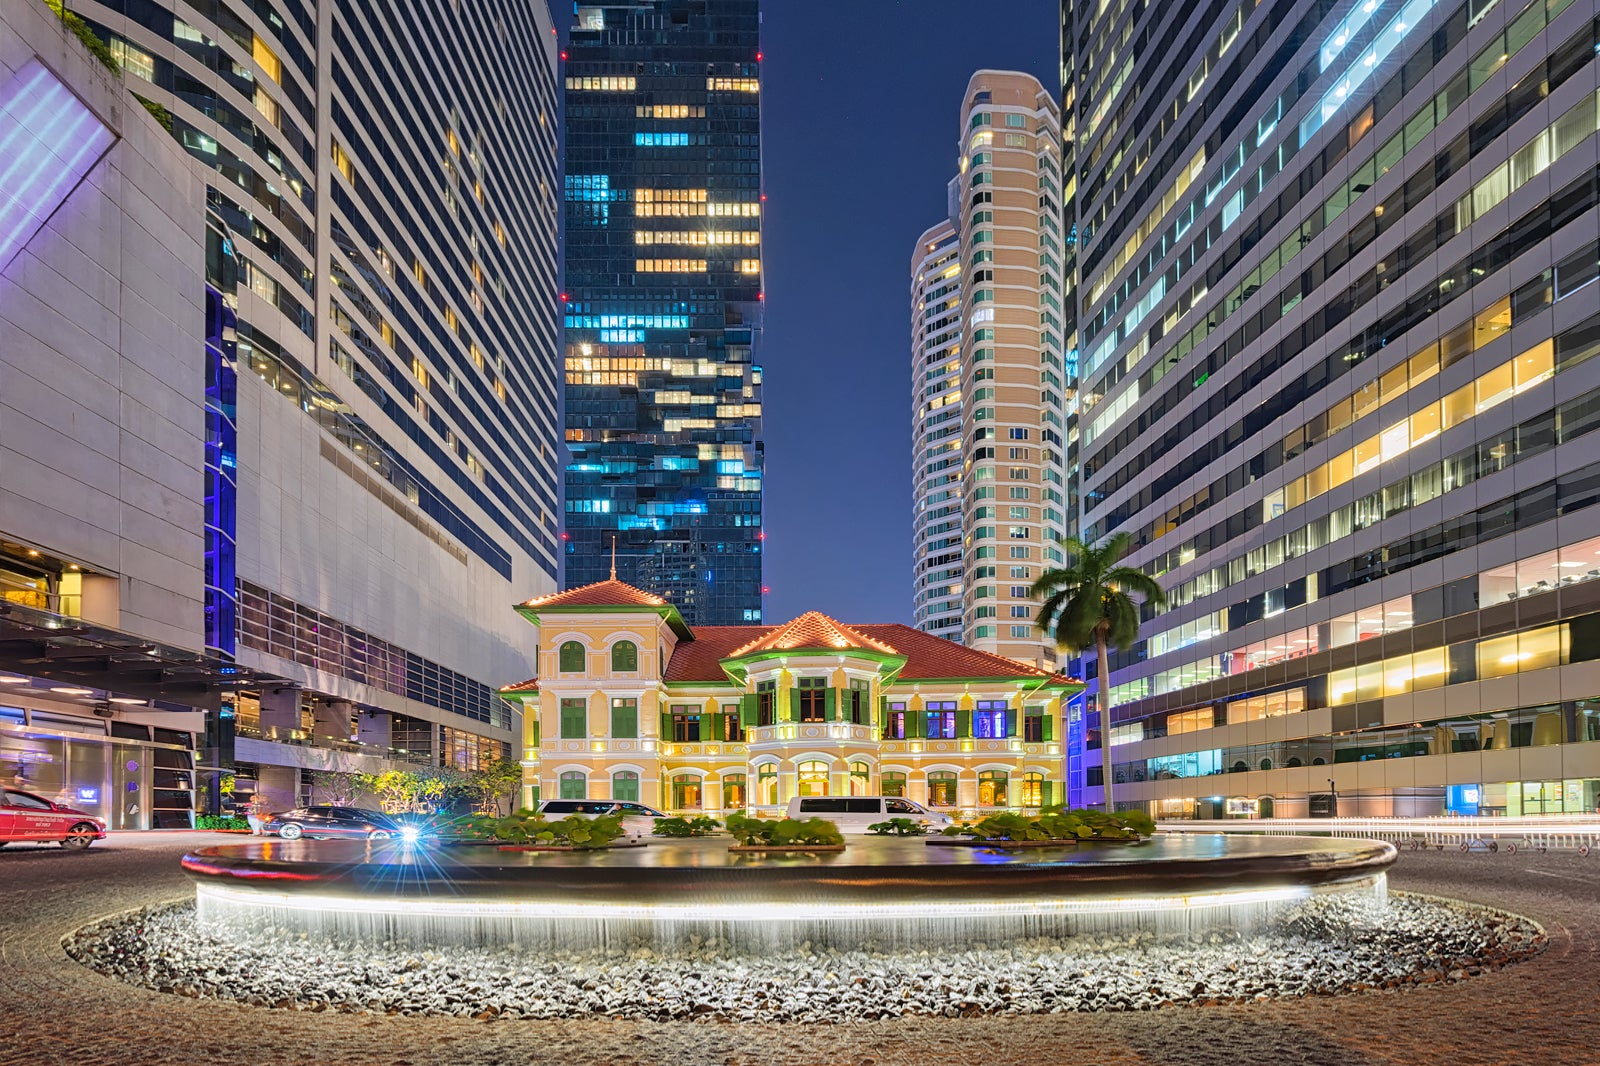 9 Best Things to Do in Sathorn - What is Sathorn Most Famous For? – Go Guides